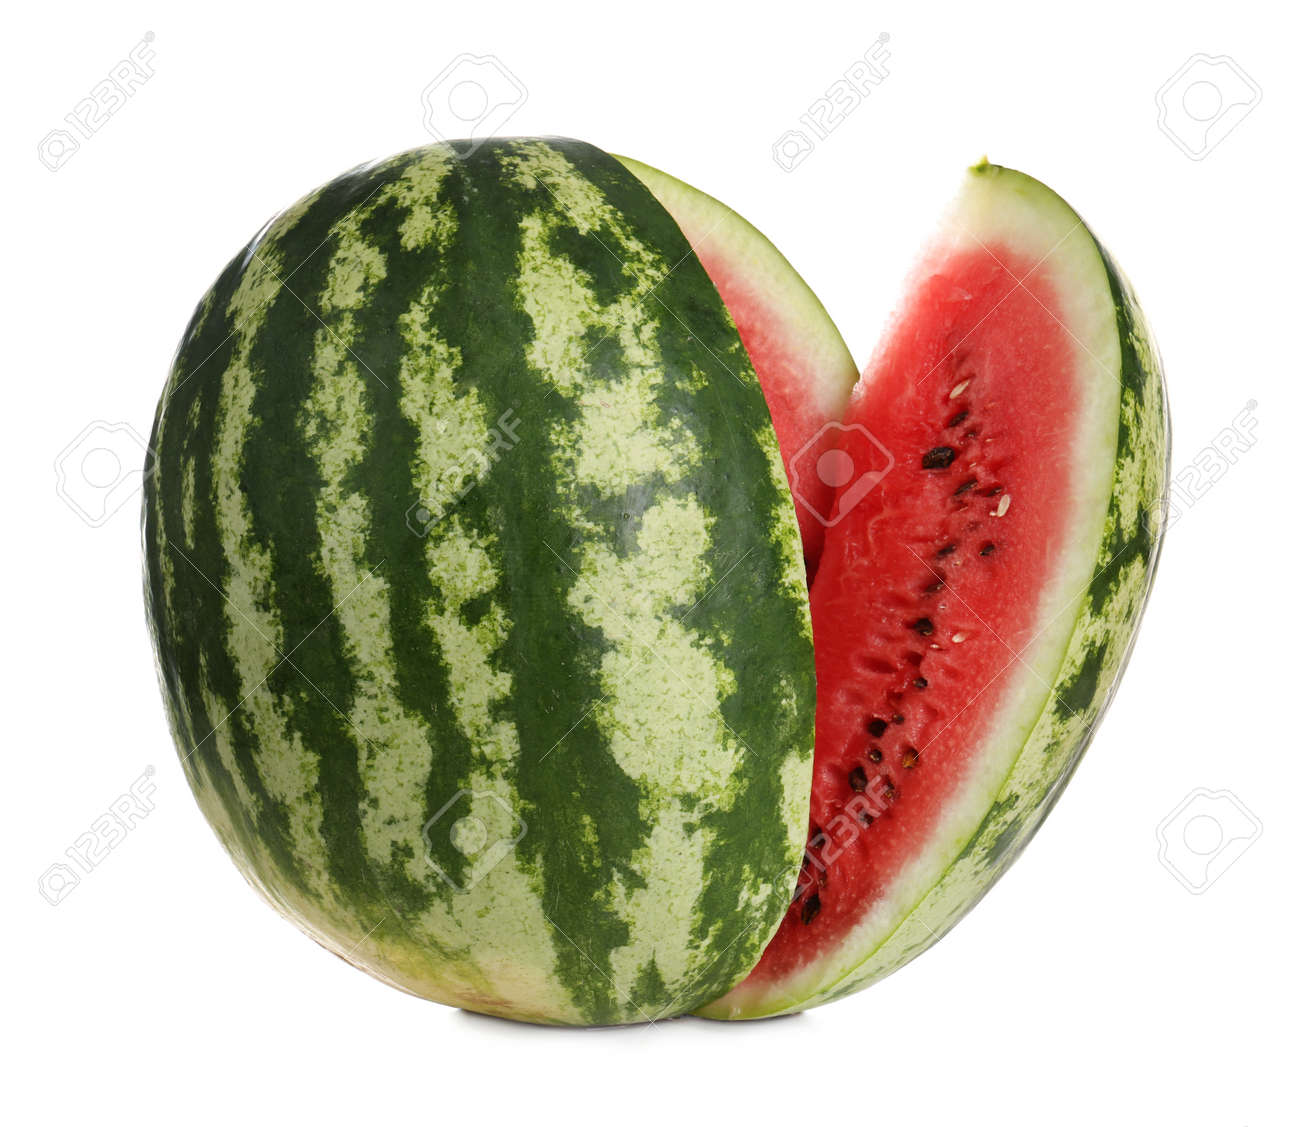 Delicious ripe cut watermelon isolated on white - 157463684